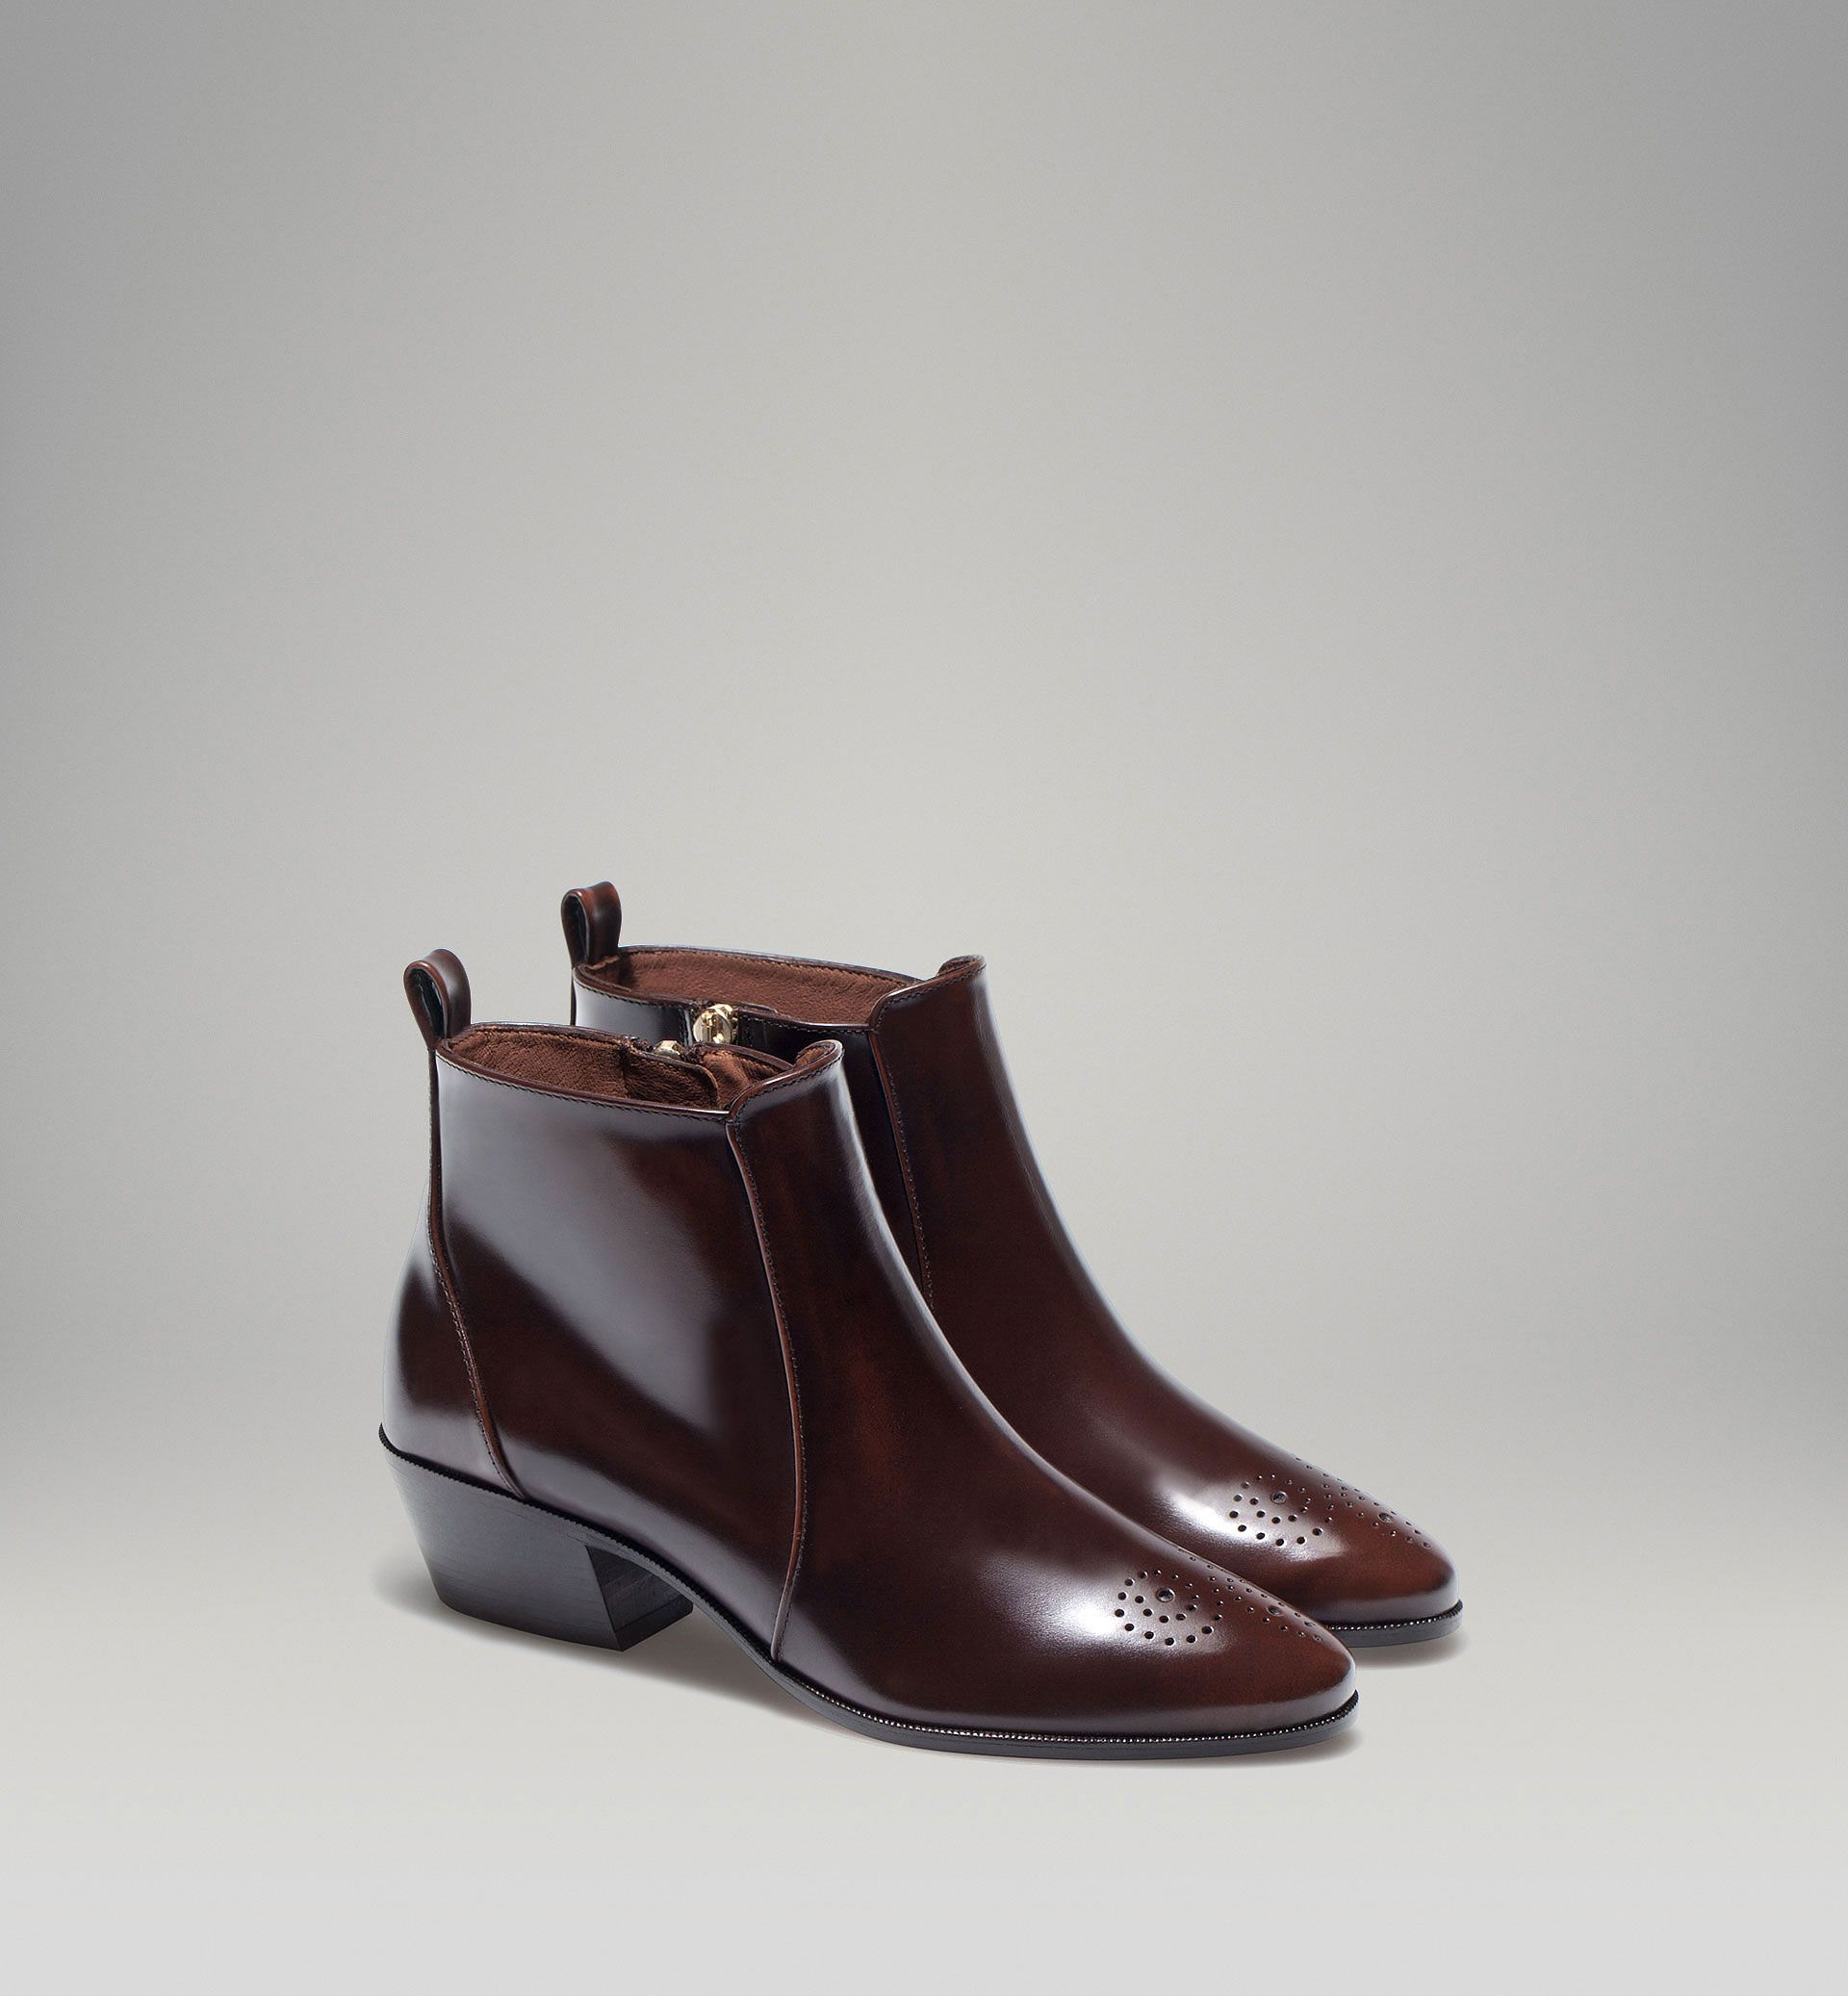 Massimo DUTTI Brogued Antik Ankle Boot Boots, Ankelboots